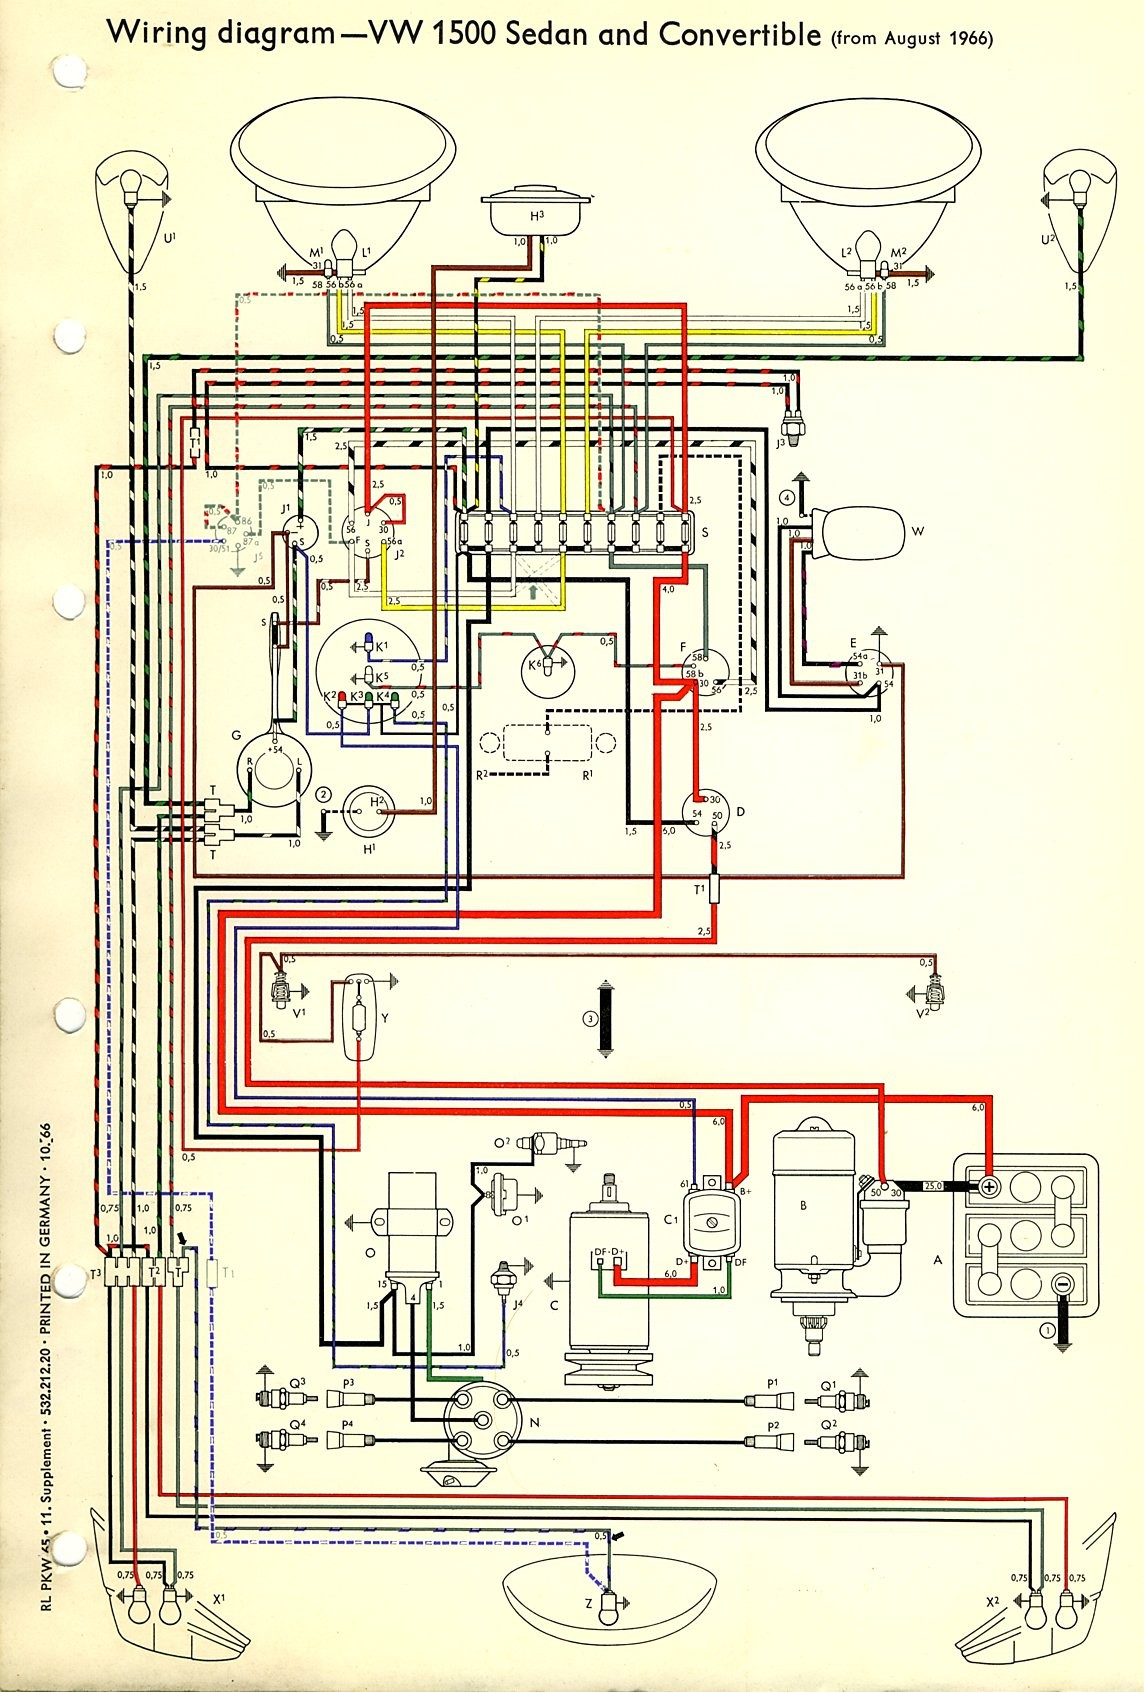 2001 vw beetle wiring wiring diagram will be a thing u2022 rh  exploreandmore co uk Factory Wiring Diagram 2000 New Beetle VW Beetle  Engine Diagram